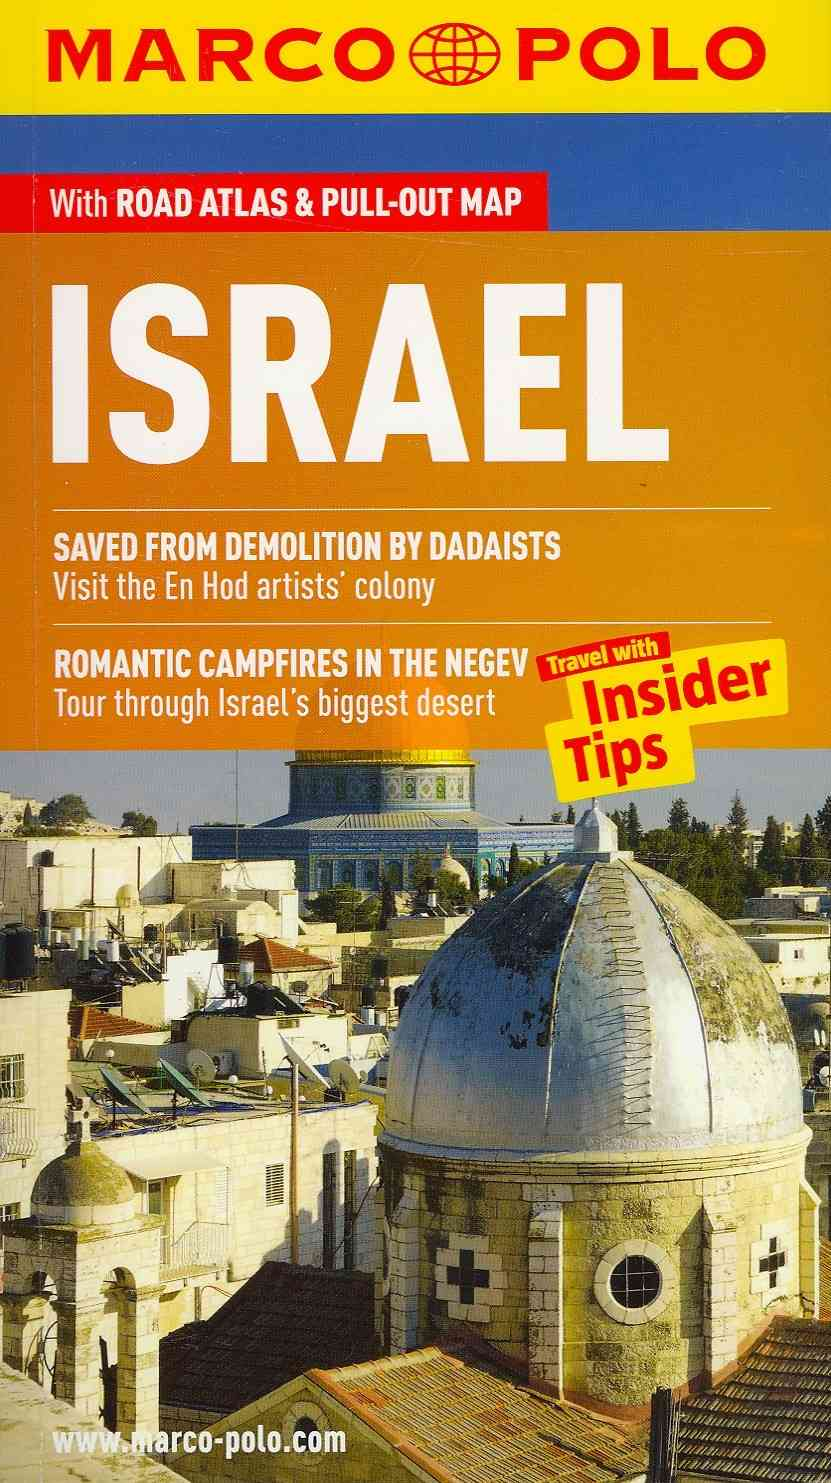 Israel Marco Polo Guide By Marco Polo Travel Publishing (COR)